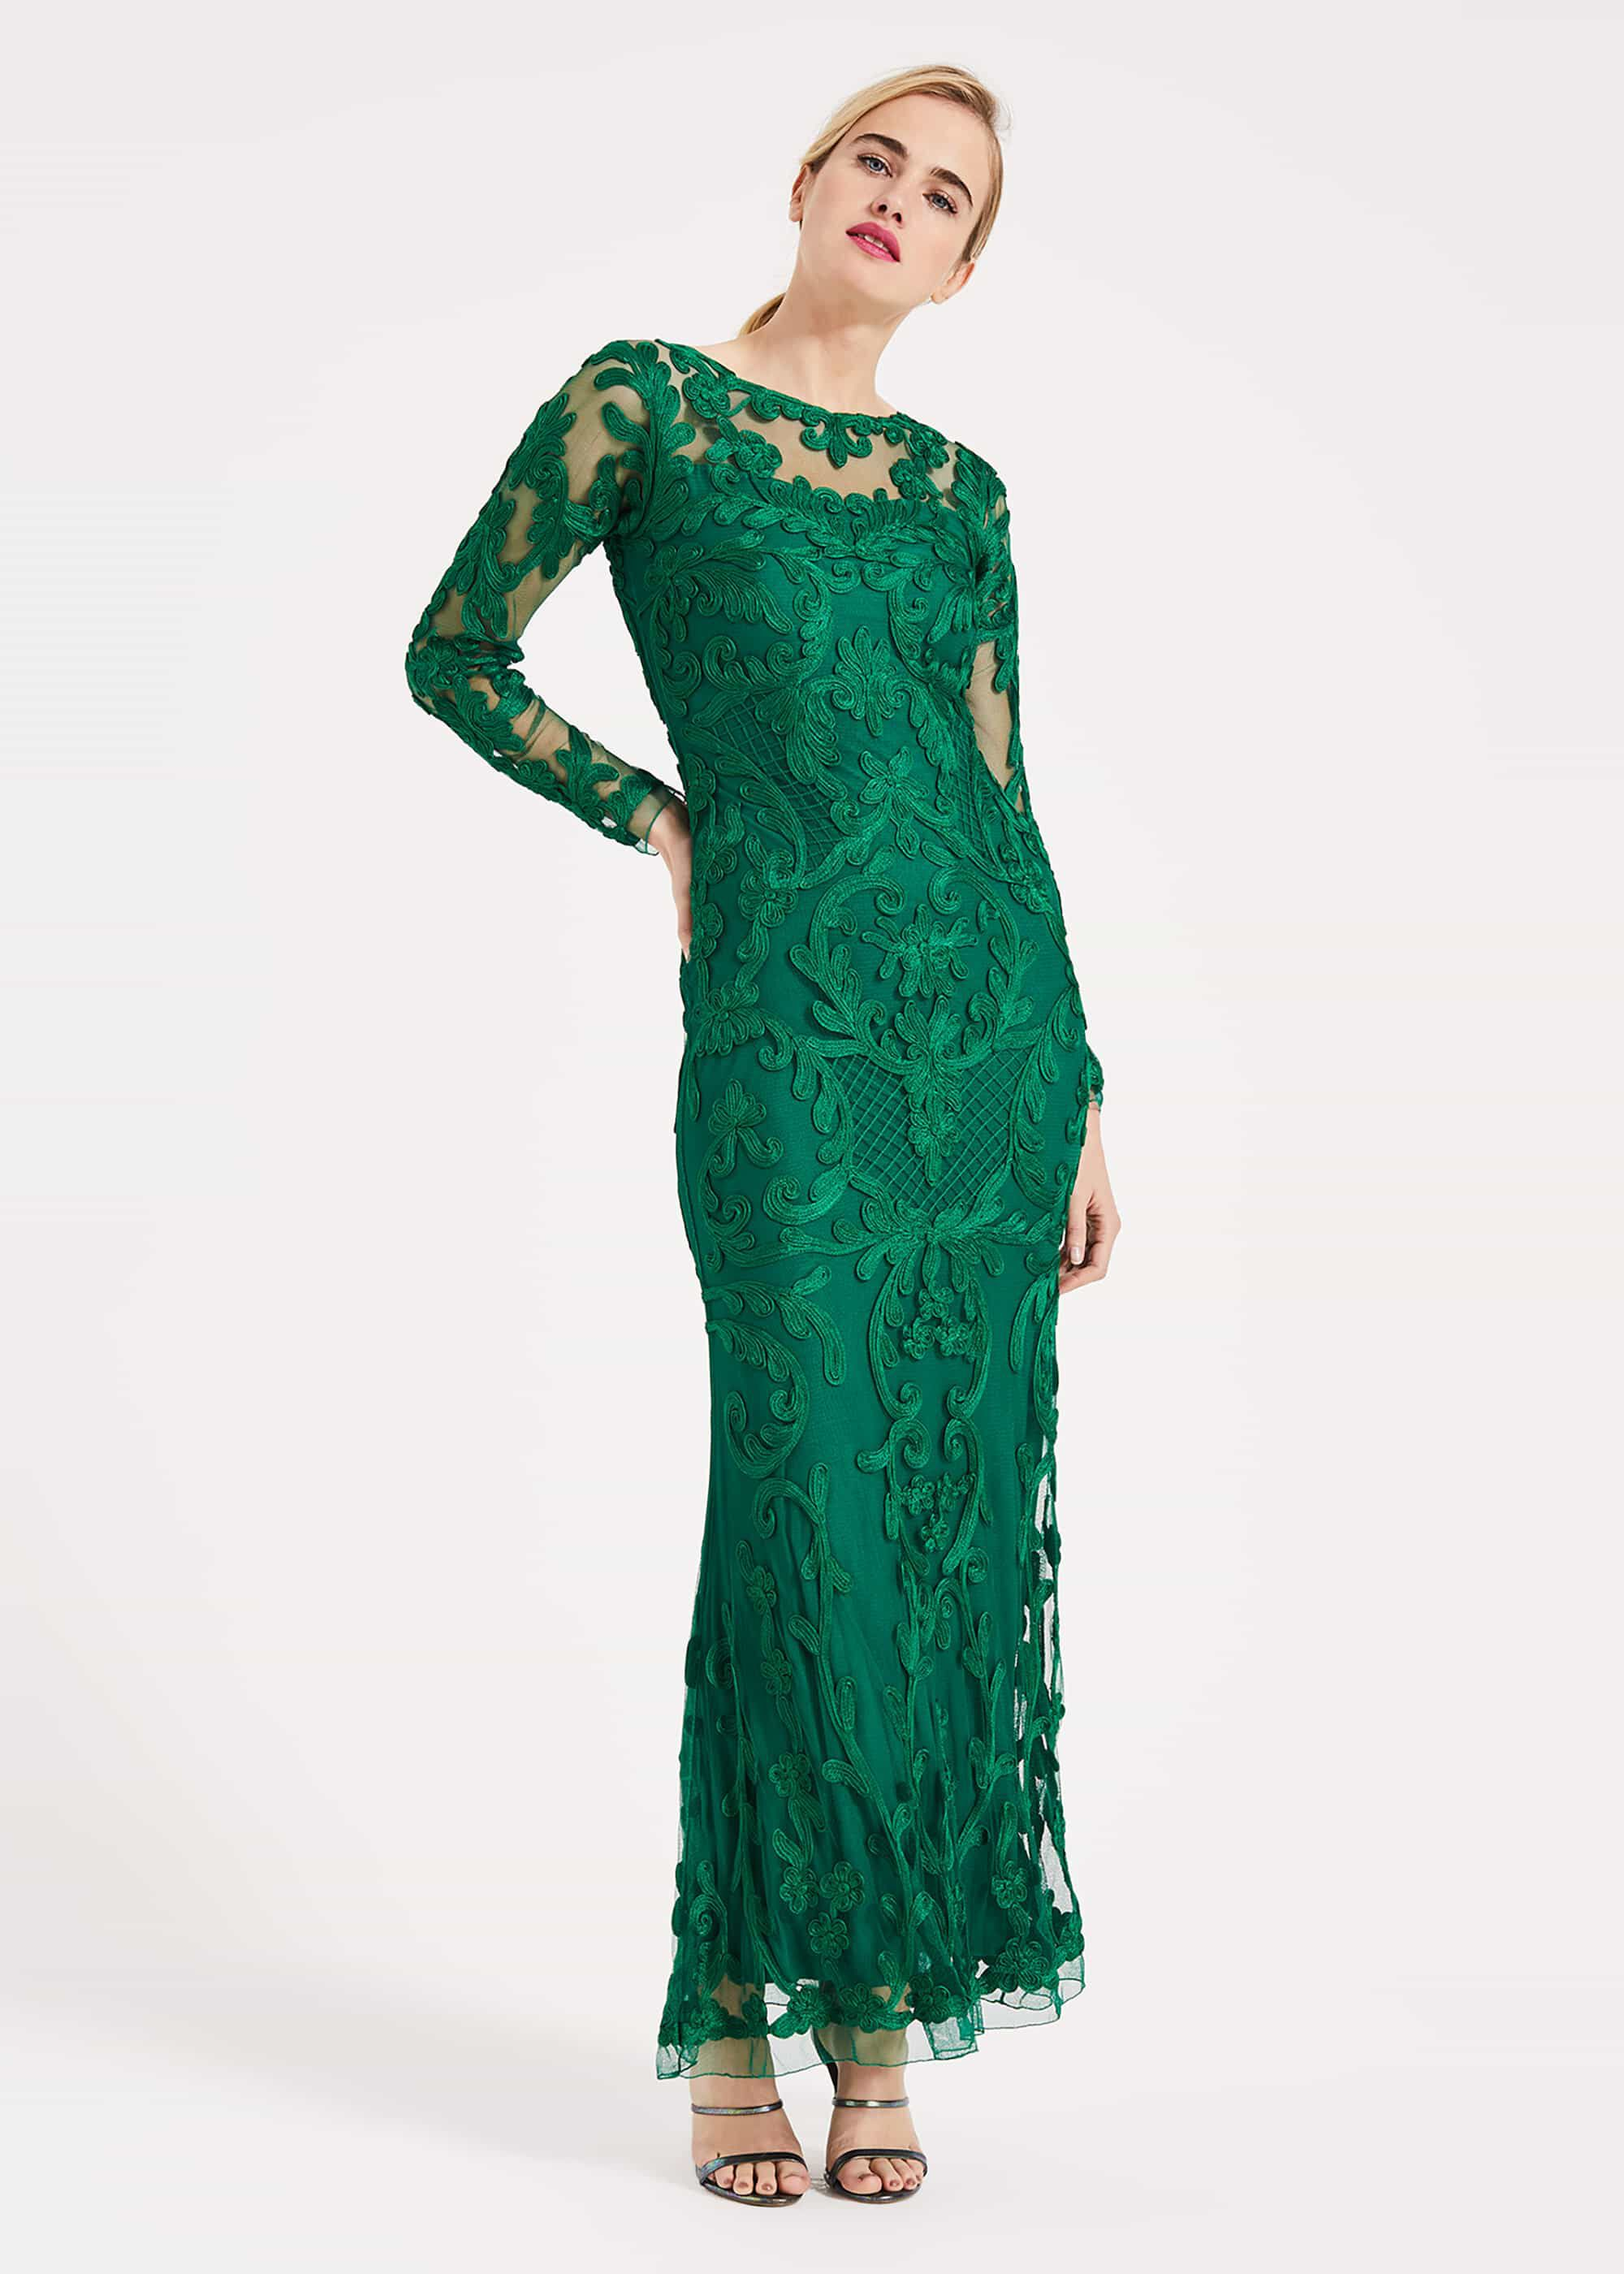 Phase Eight Nikita Tapework Dress, Green, Maxi, Occasion Dress